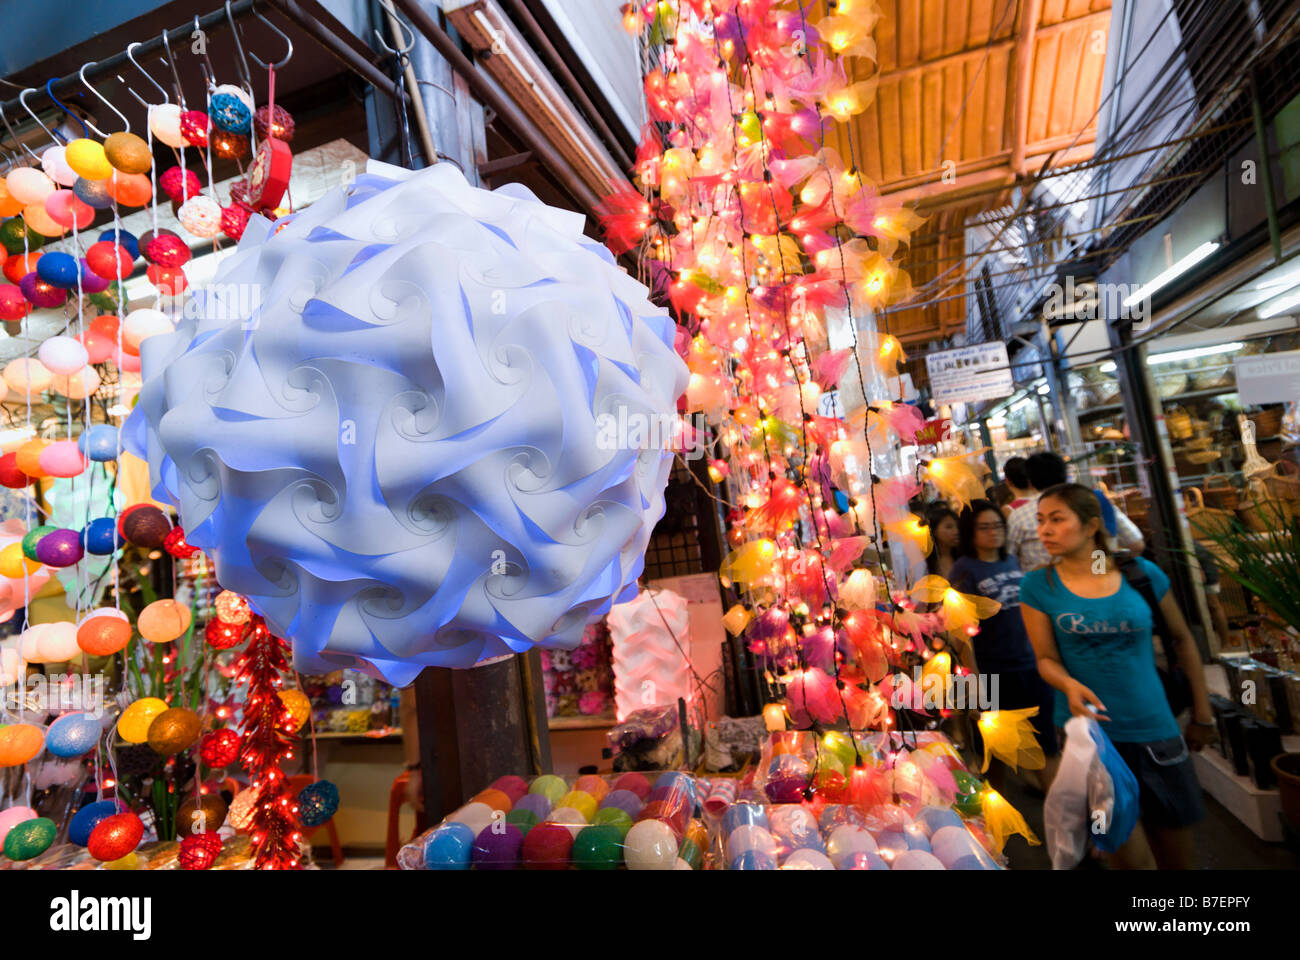 Fairy light stall at Chatuchak Weekend Market in Bangkok Thailand - Stock Image